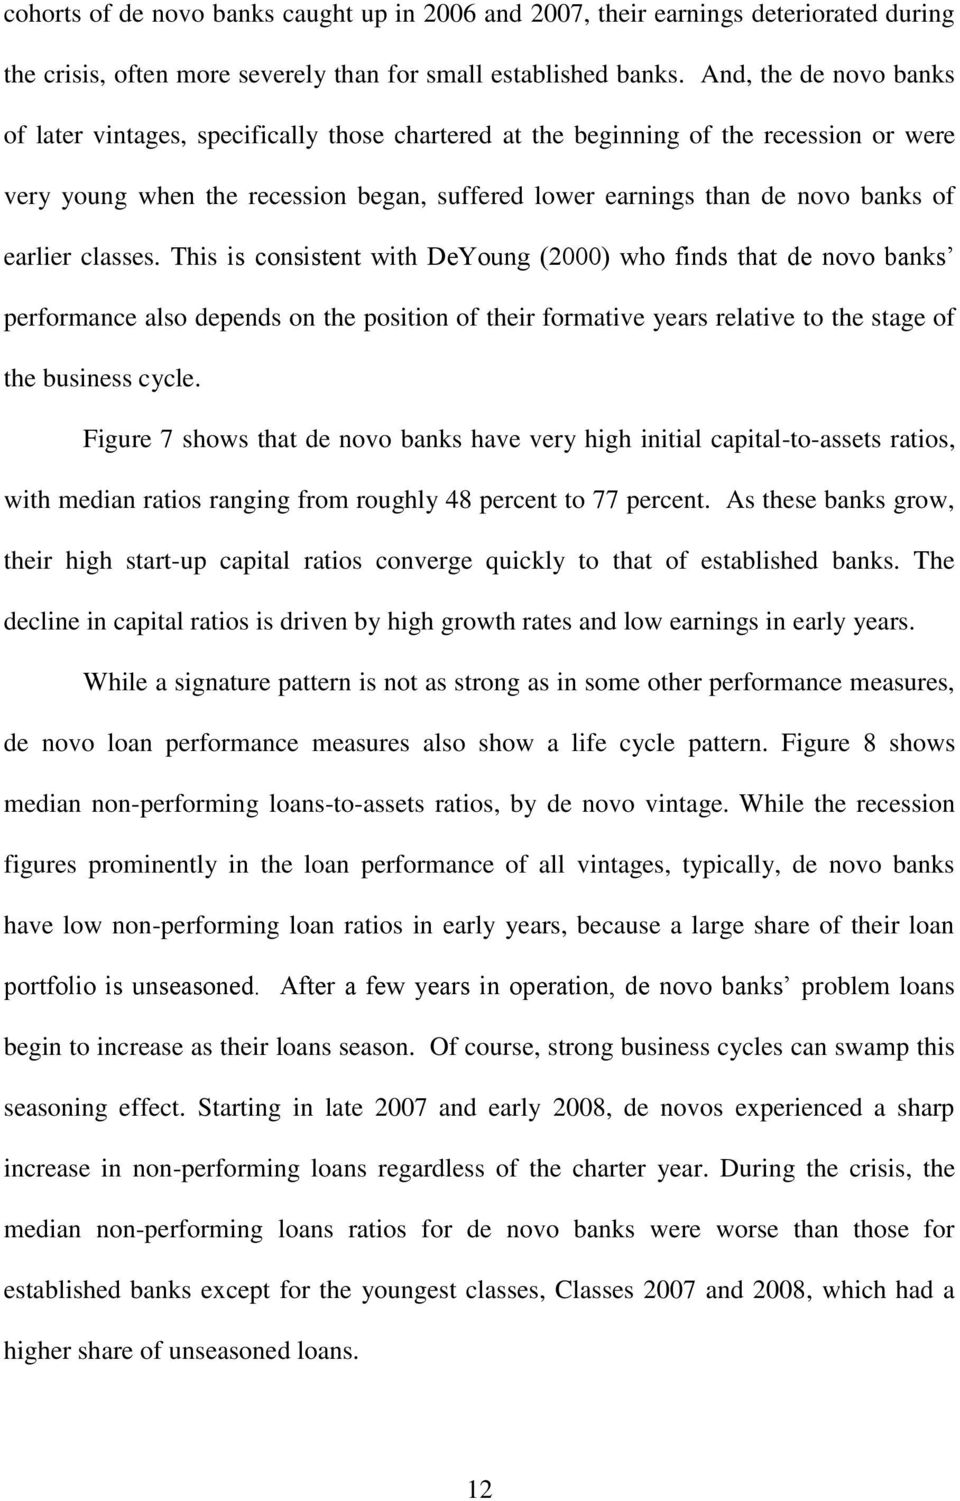 earlier classes. This is consistent with DeYoung (2000) who finds that de novo banks performance also depends on the position of their formative years relative to the stage of the business cycle.